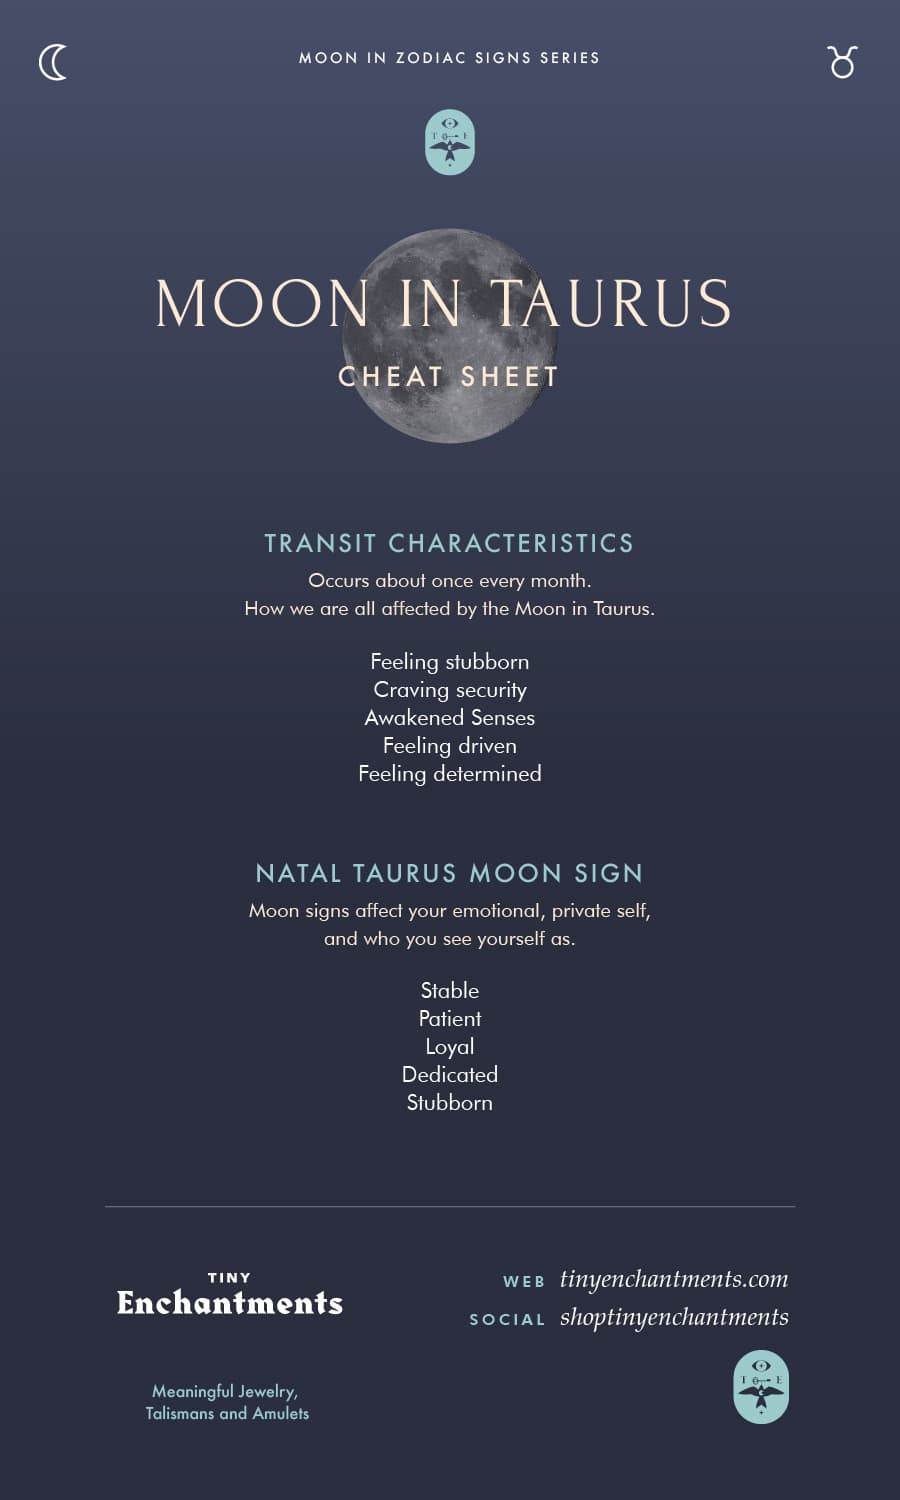 Taurus Moon Sign and Moon in Taurus Transit Meanings Infographic